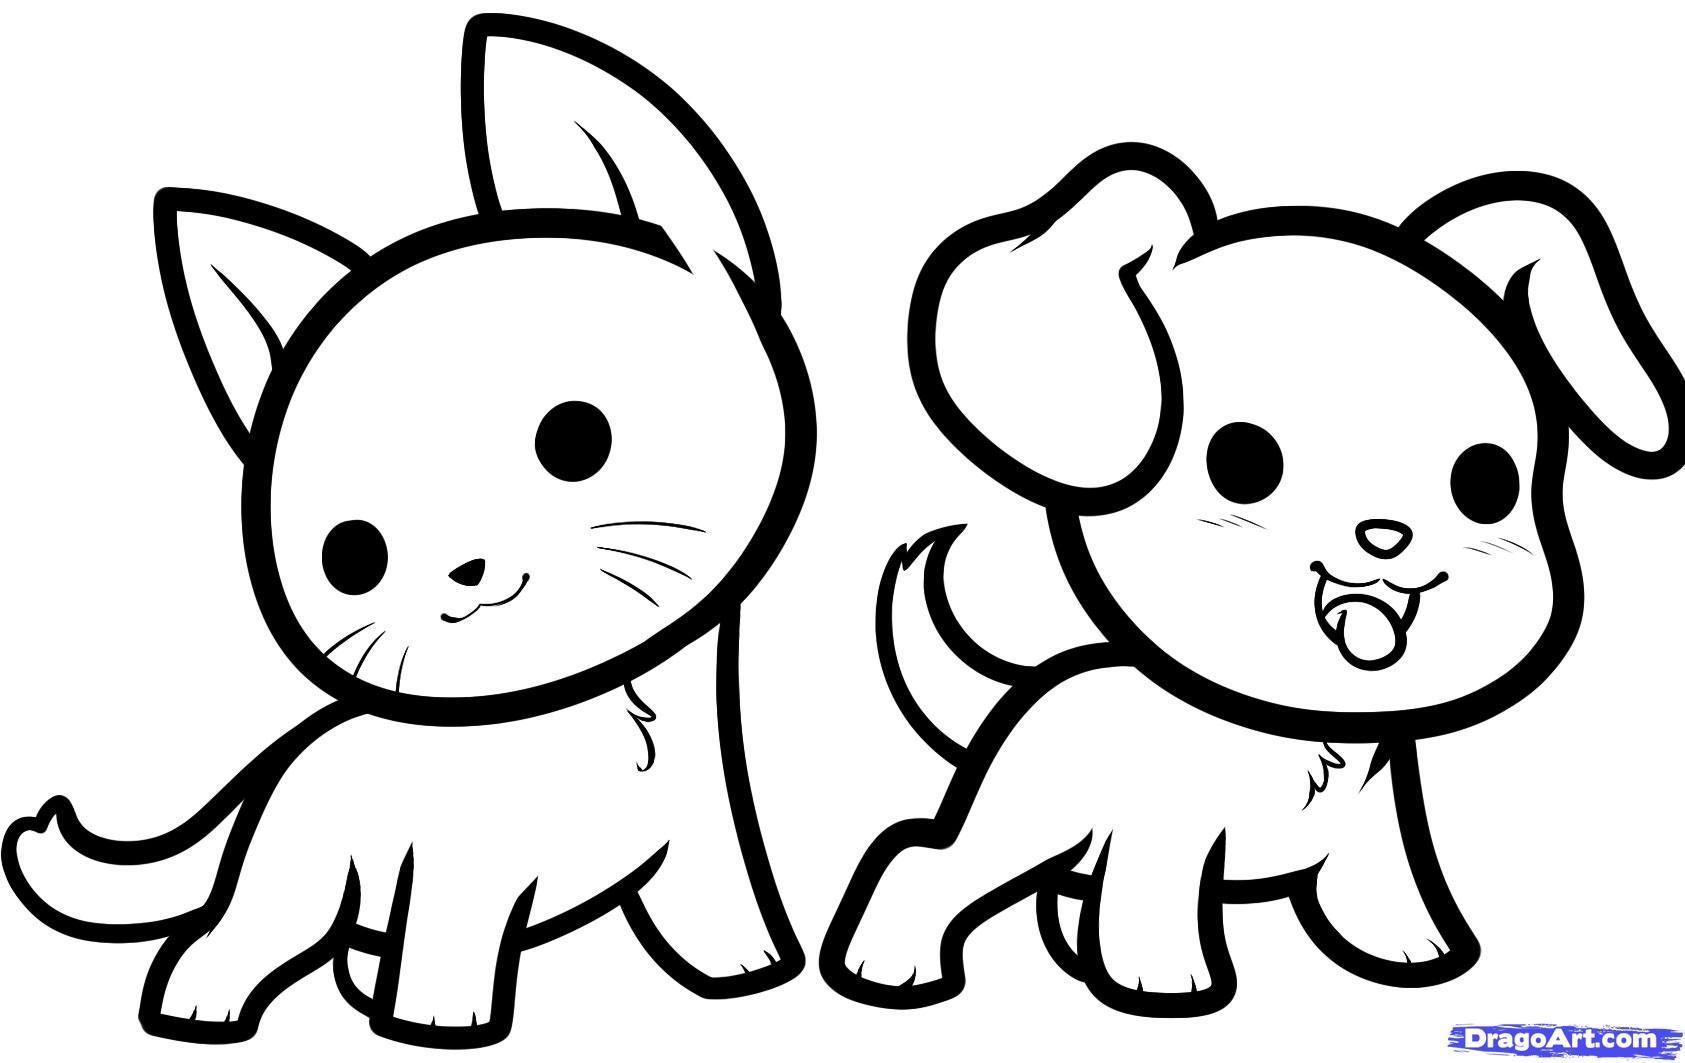 Easy to Draw Cute Animal Drawings, 1685 x 1063 115 kB jpeg